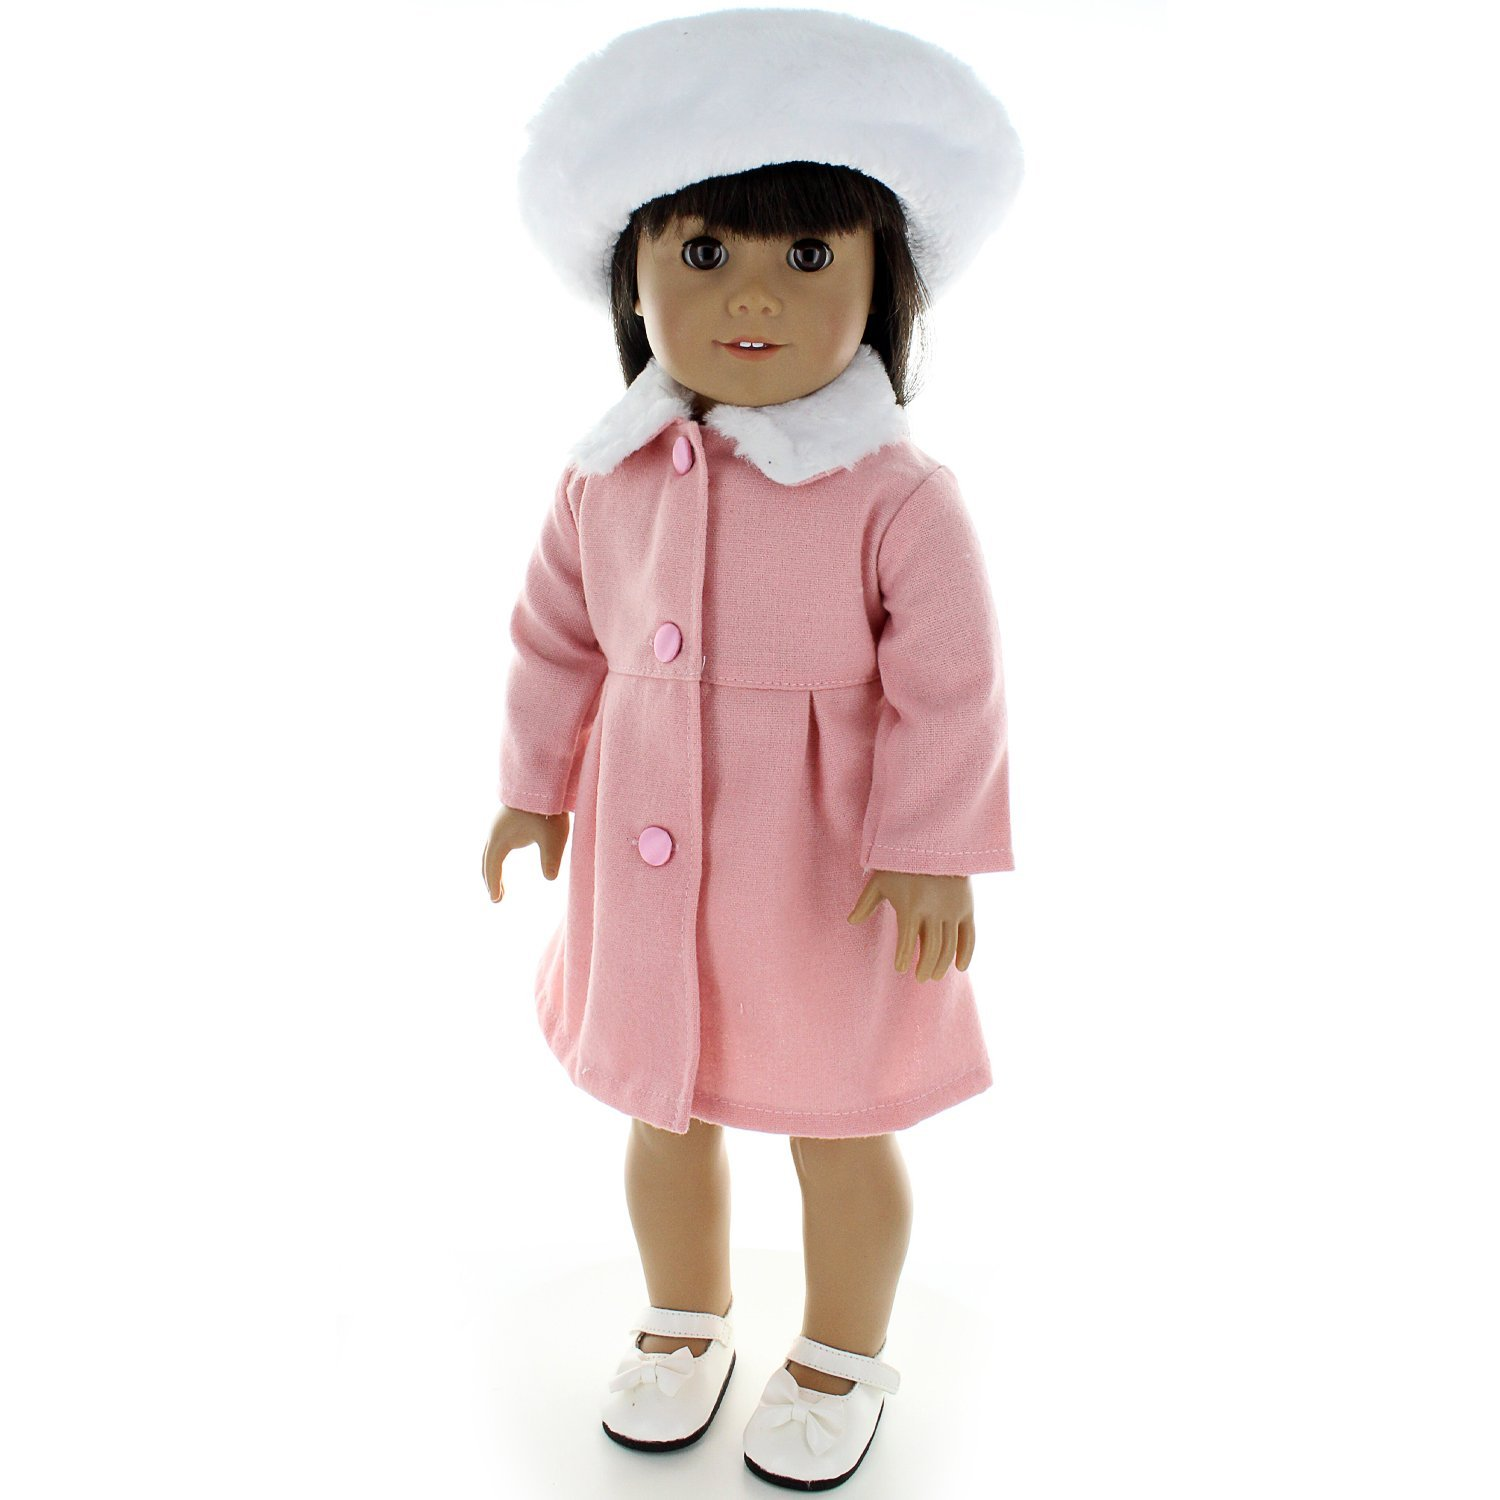 Doll Clothes J Kennedy Outfit Dress Fits American Girl & Other 18 Inch Dolls by Pink Butterfly Closet